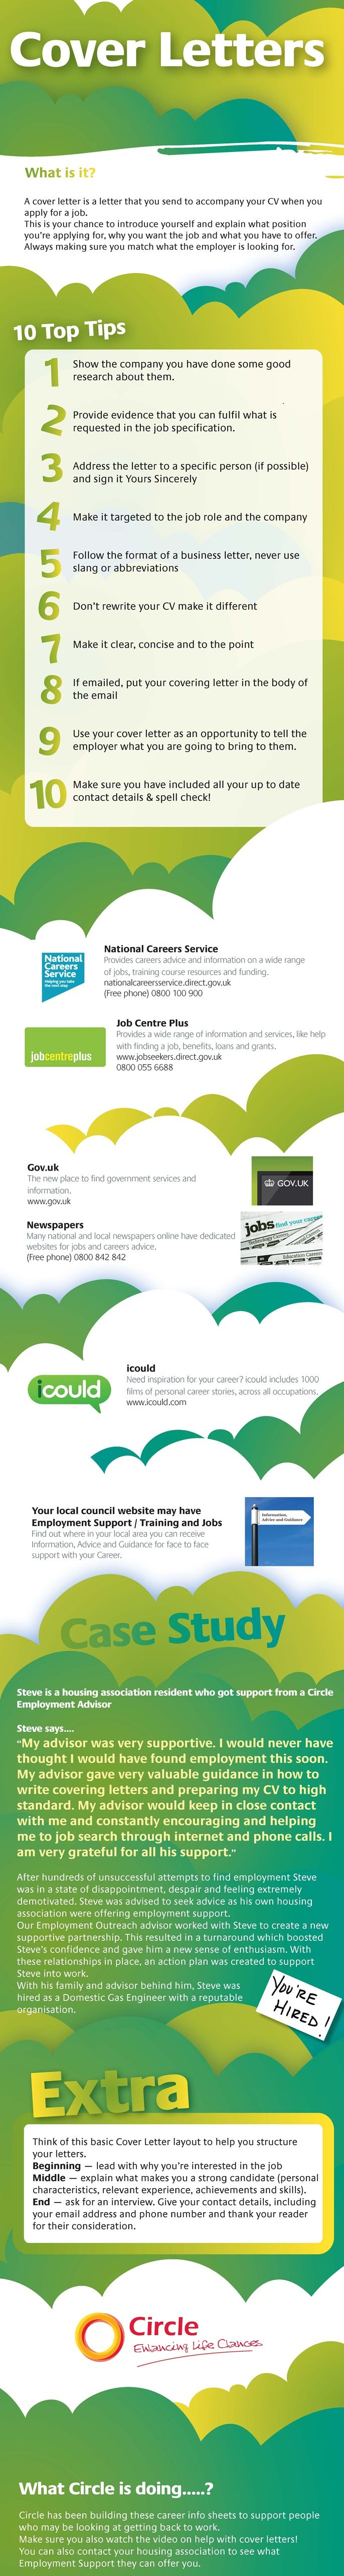 Top 10 Tips To Writing A Great Cover Letter [INFOGRAPHIC] #coverletter # Careers